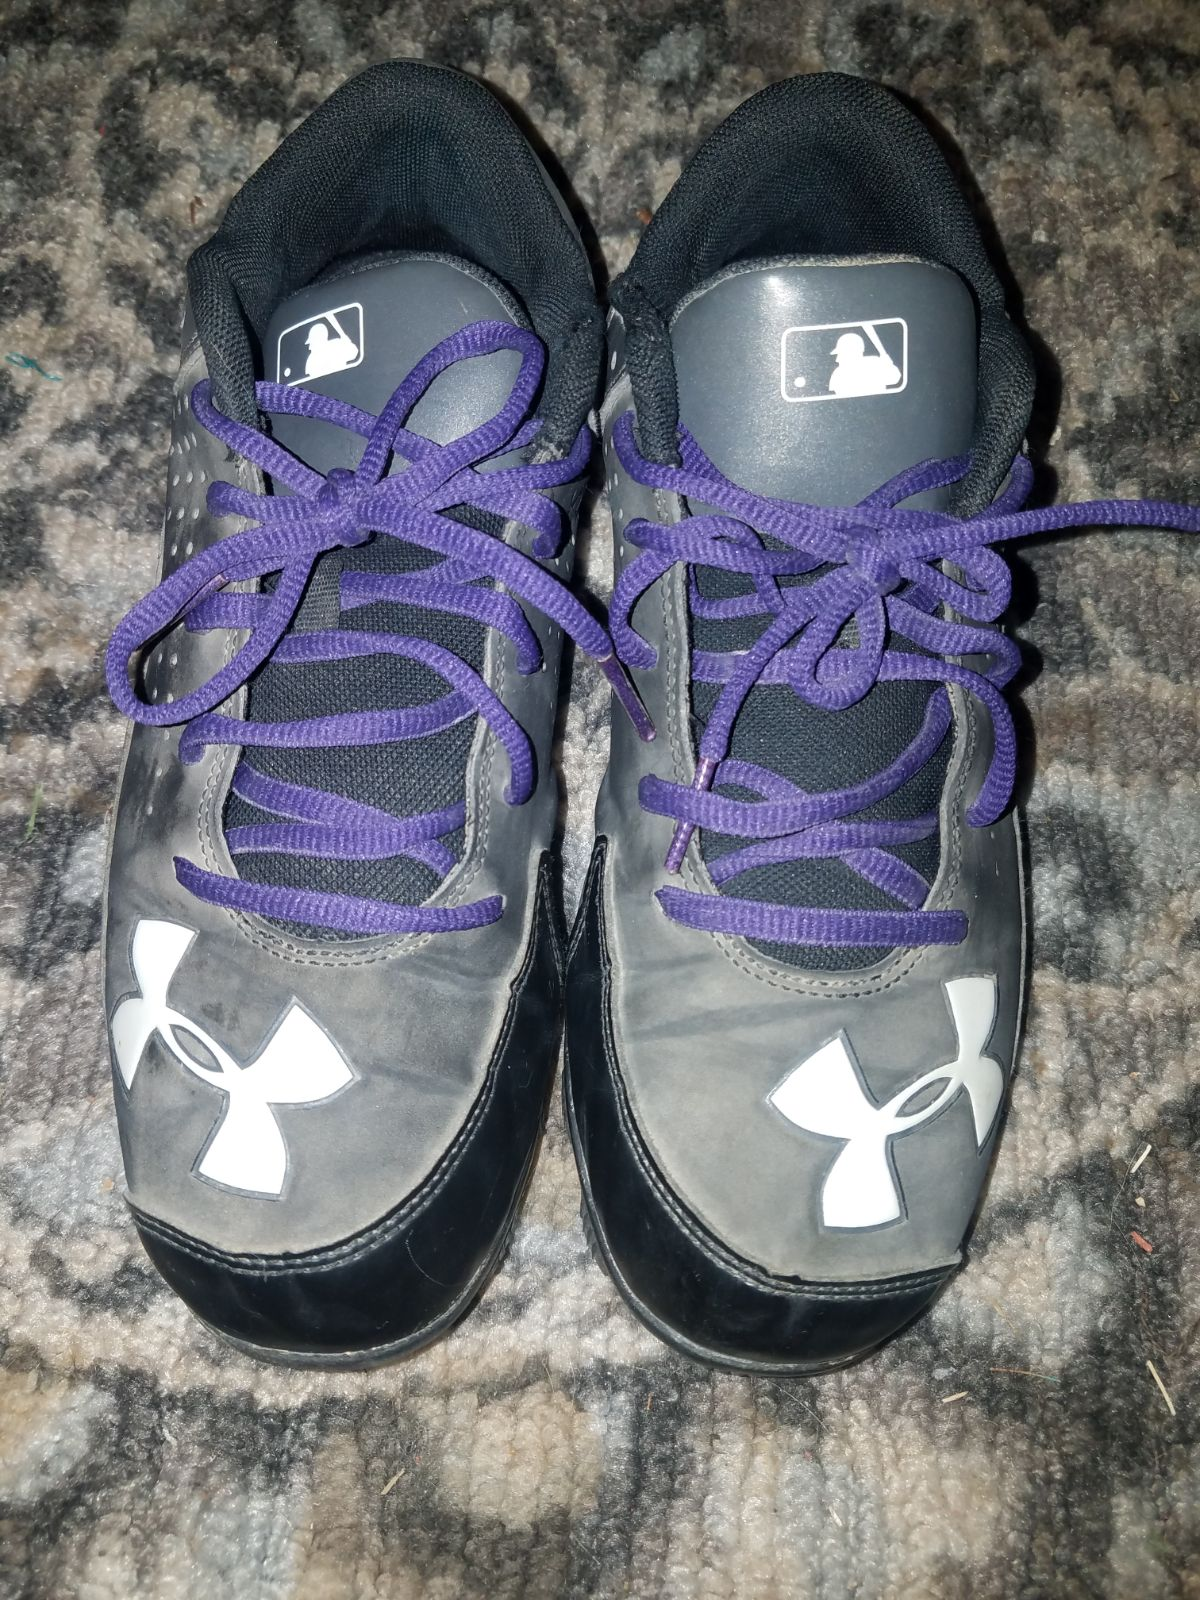 Under Armour softball cleats size 6